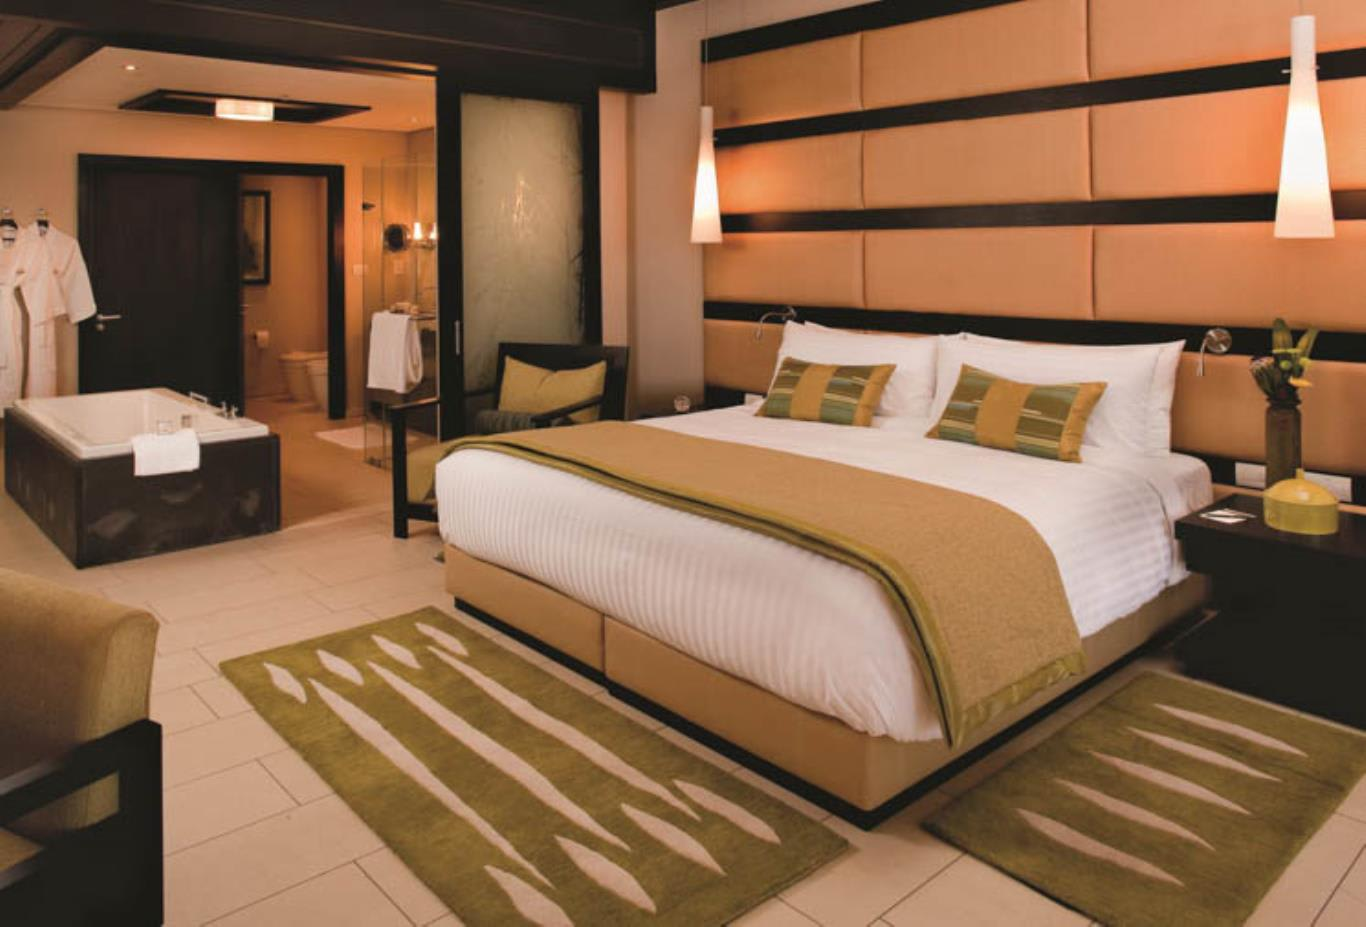 Deluxe Room bedroom interior